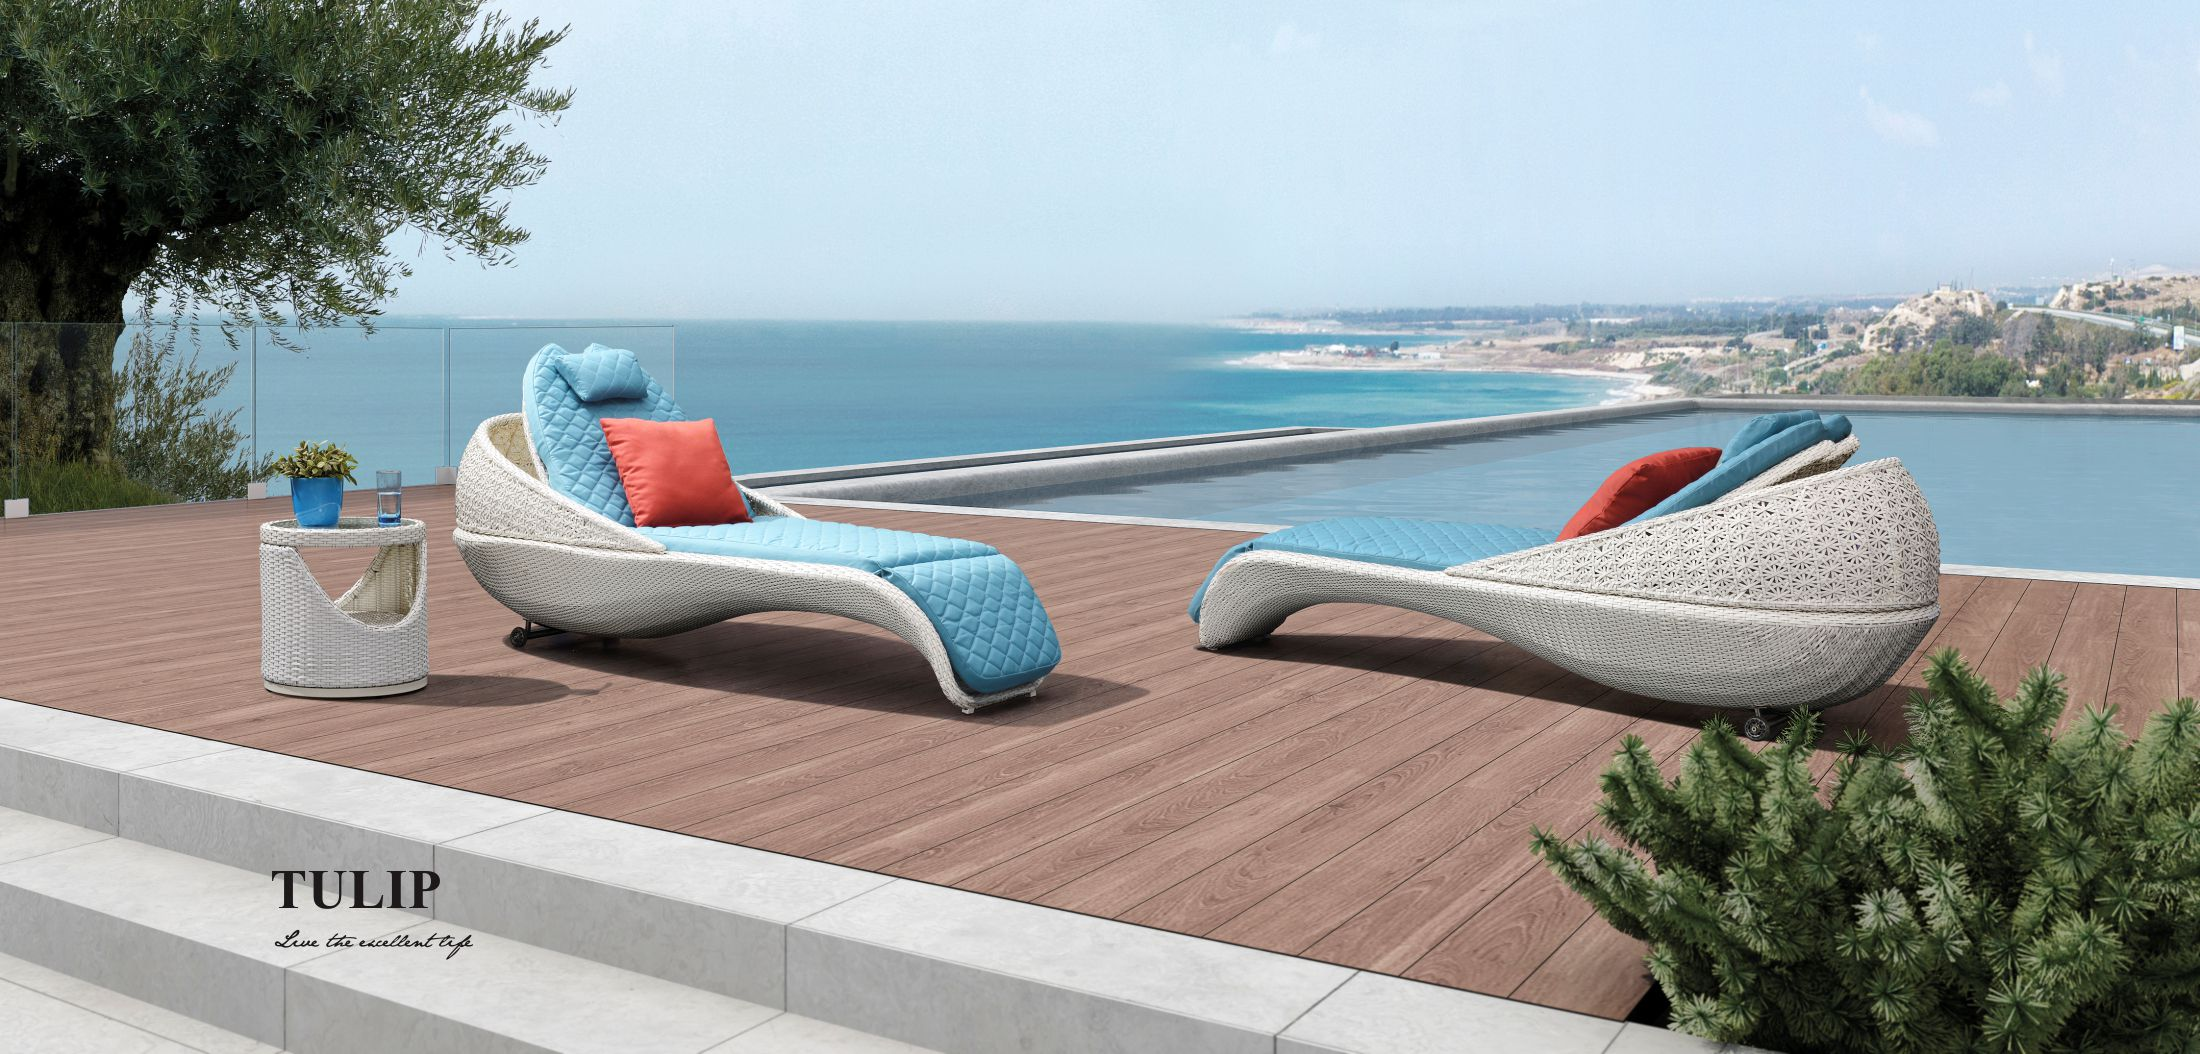 Tulip Chaise Lounger 203050